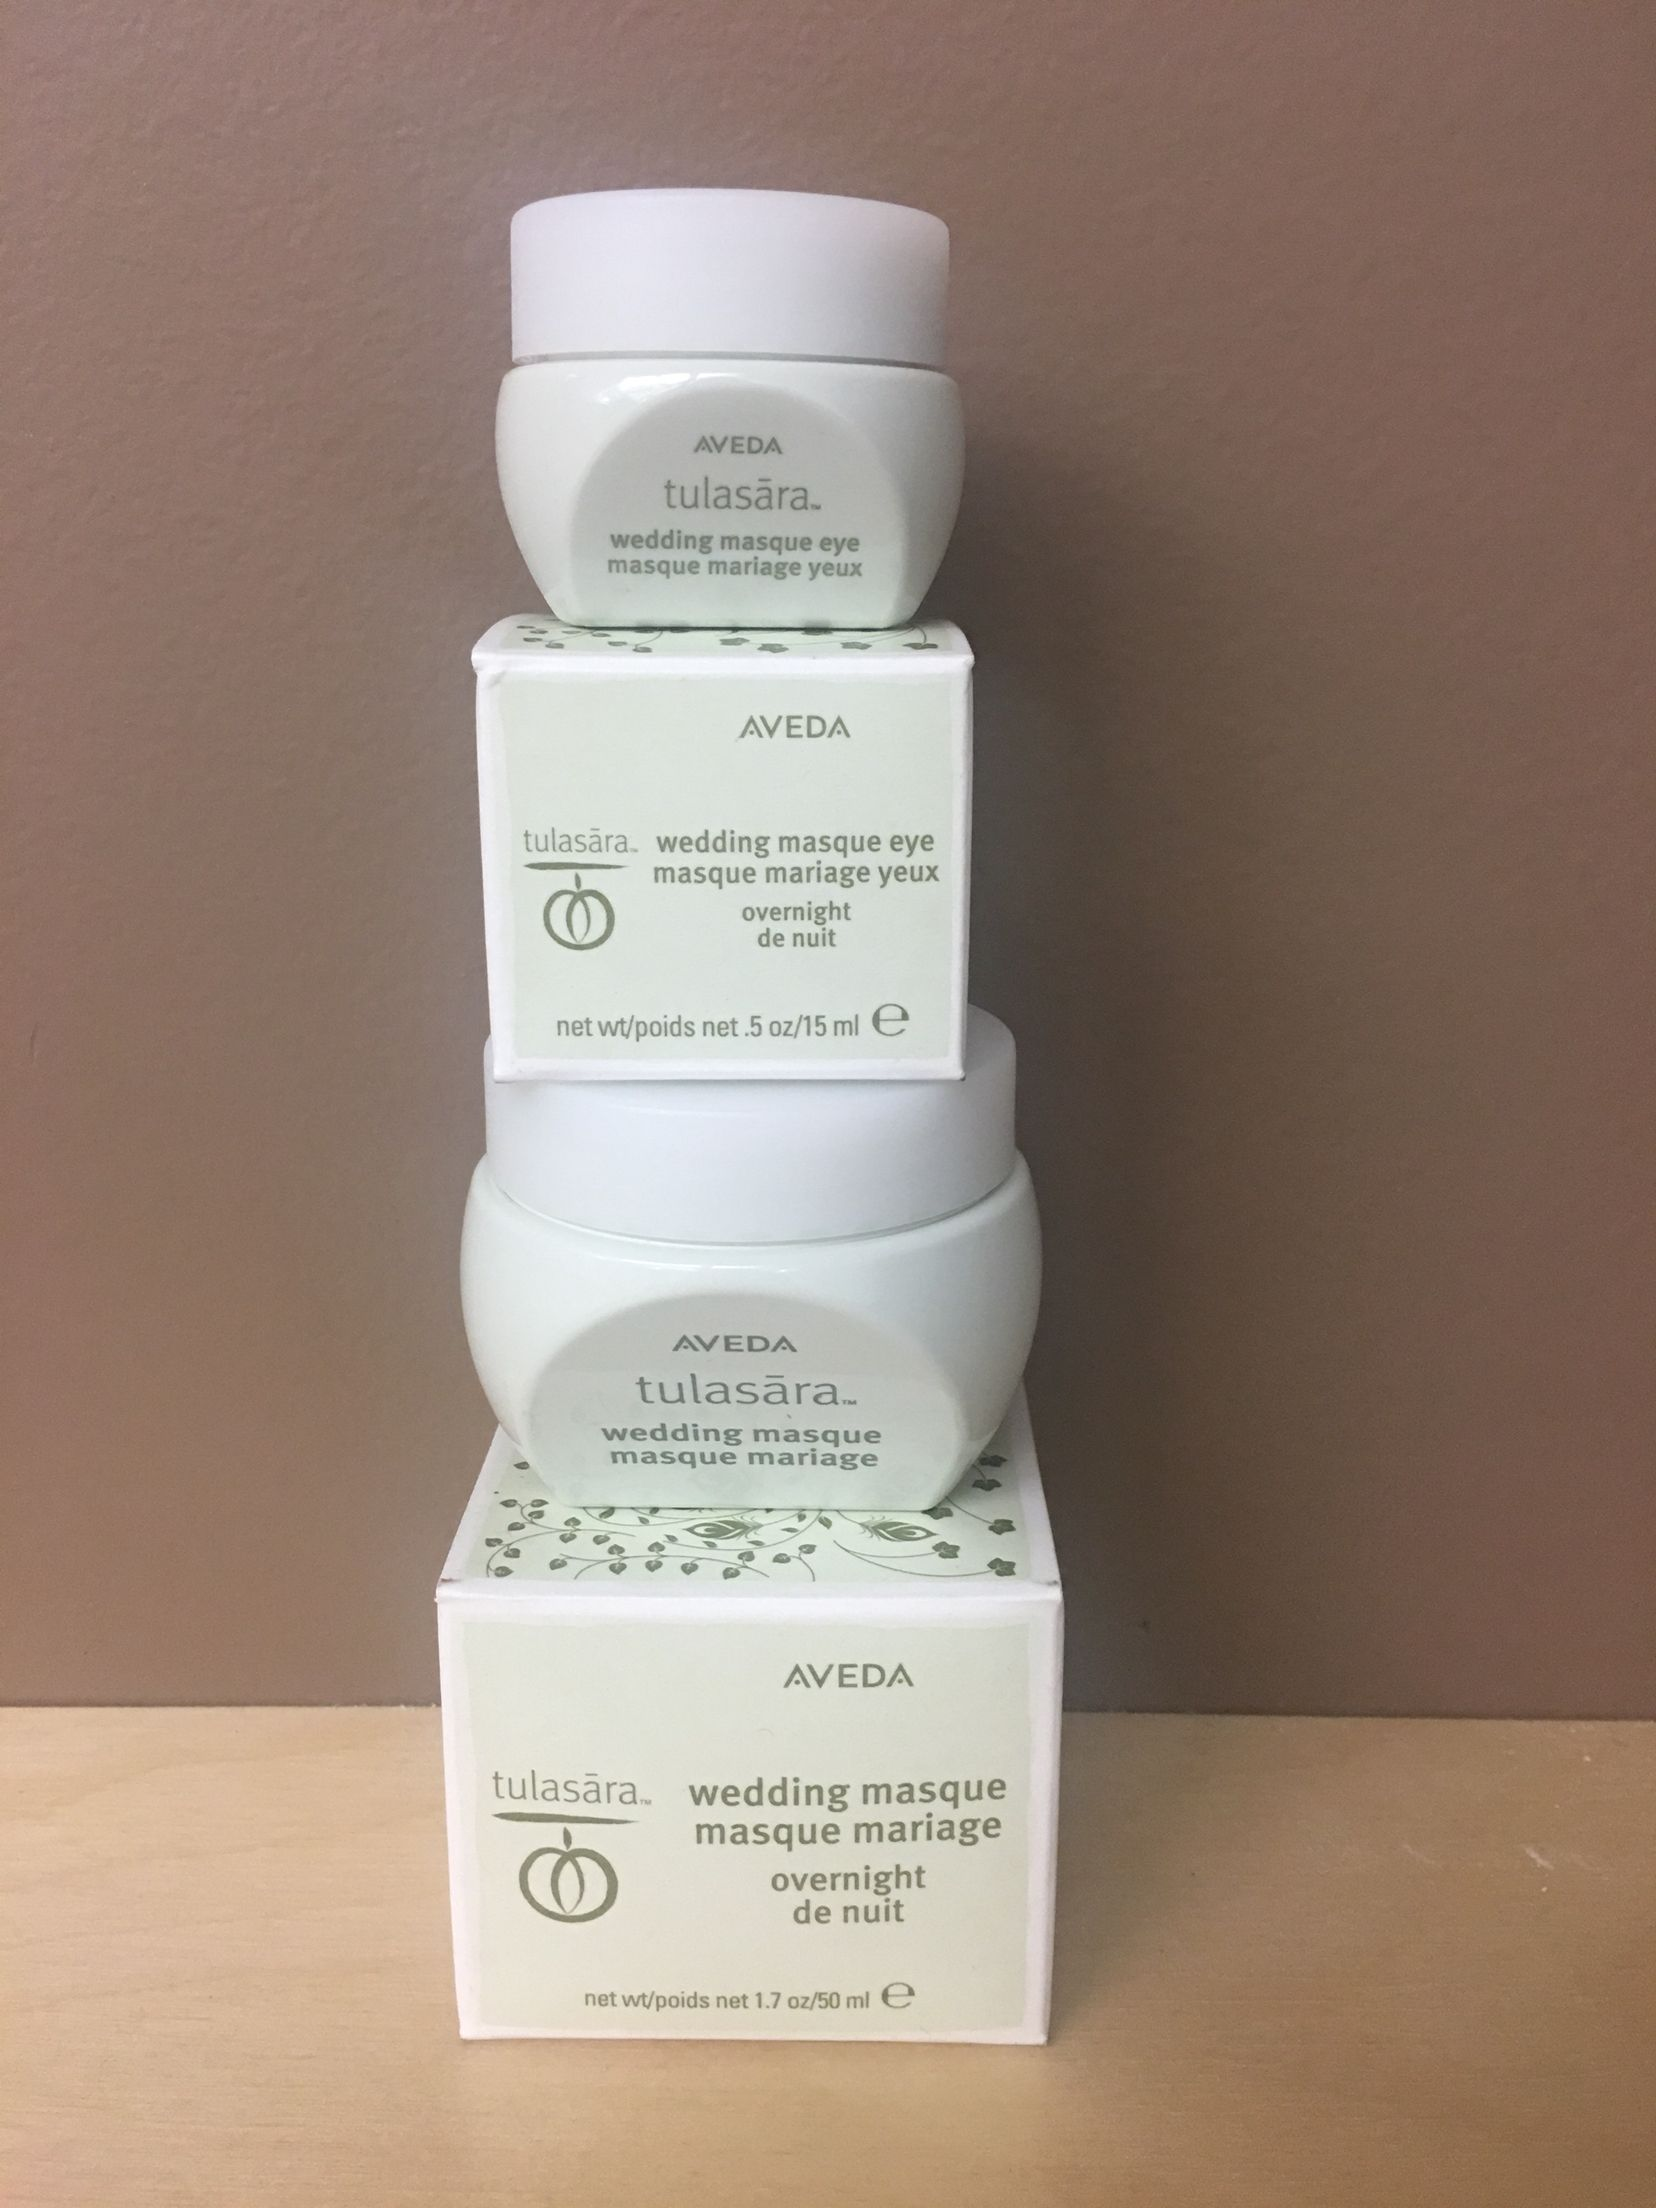 New Aveda Tulasara products join the skin care rituals